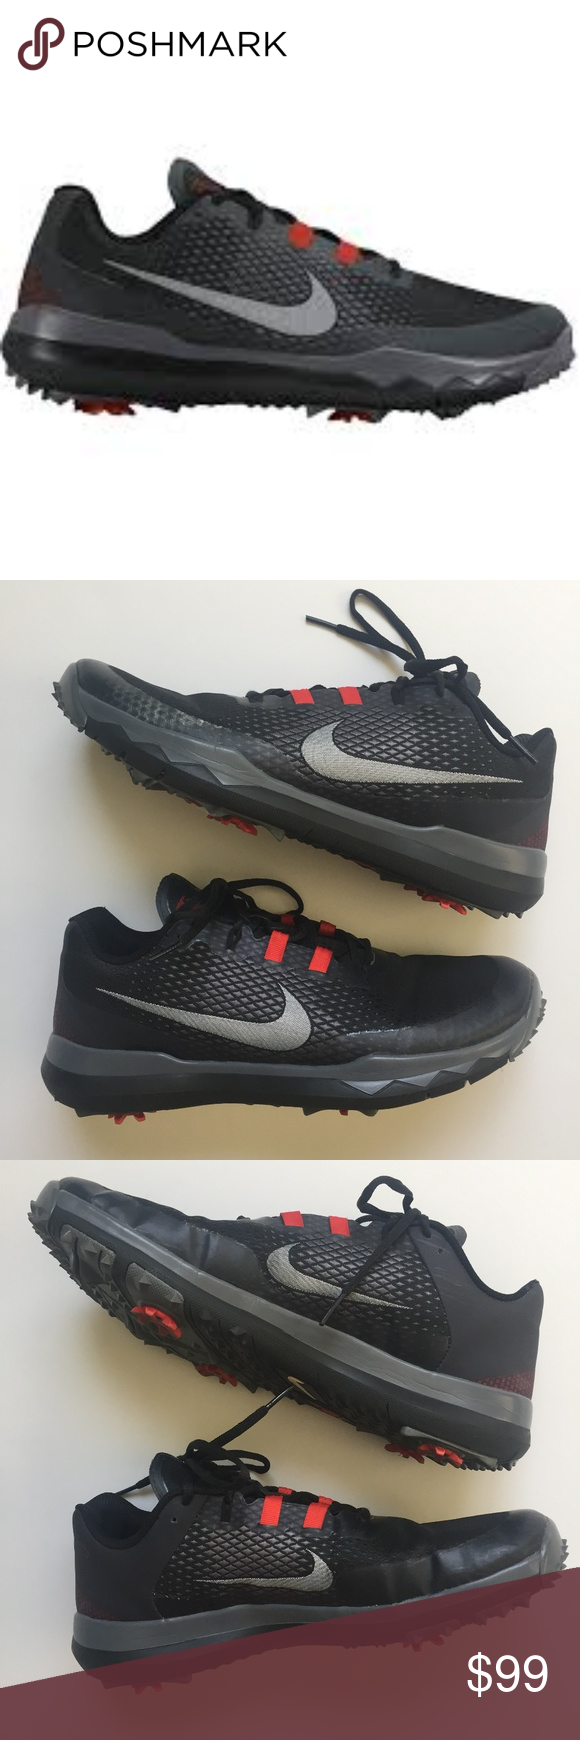 the latest 73a19 85f5e NIKE 2015 TW Tiger Woods Golf Shoes Cleats Black Light wear, creasing near  ball of